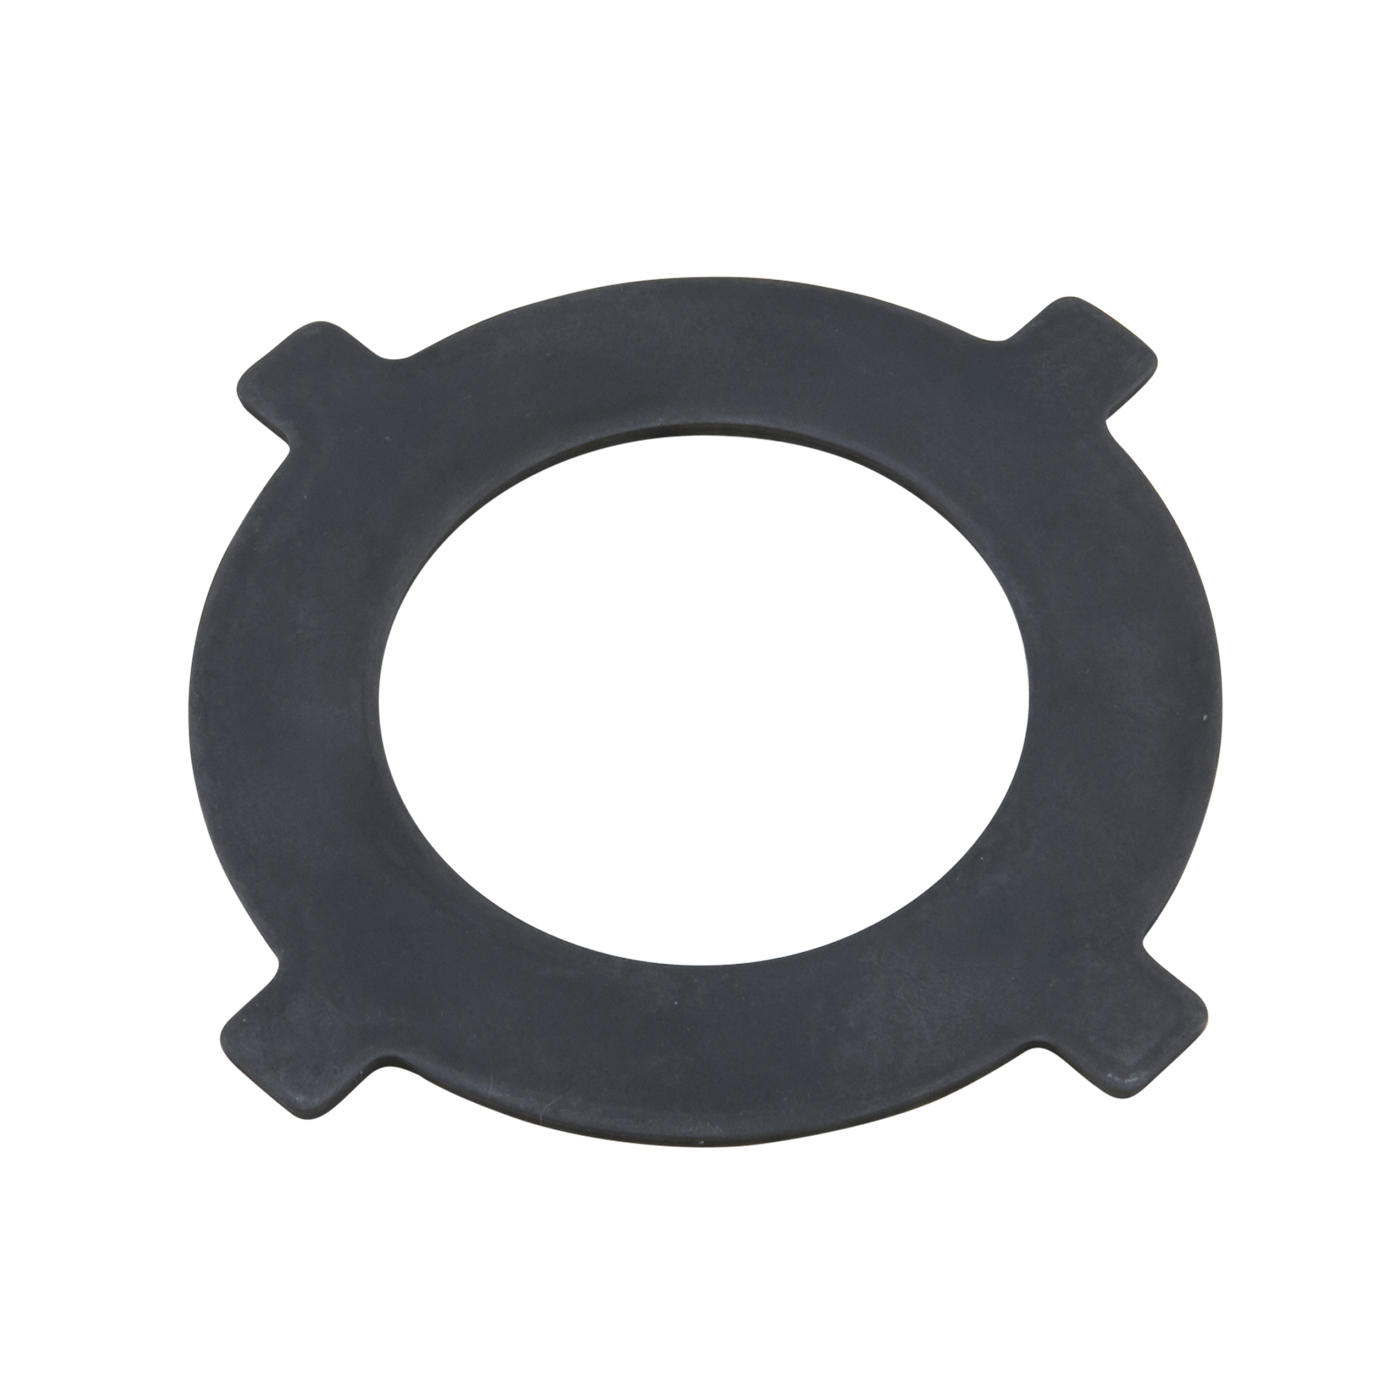 YPKD44-PC-02 - Powr Lok flat drive plate for Dana 44